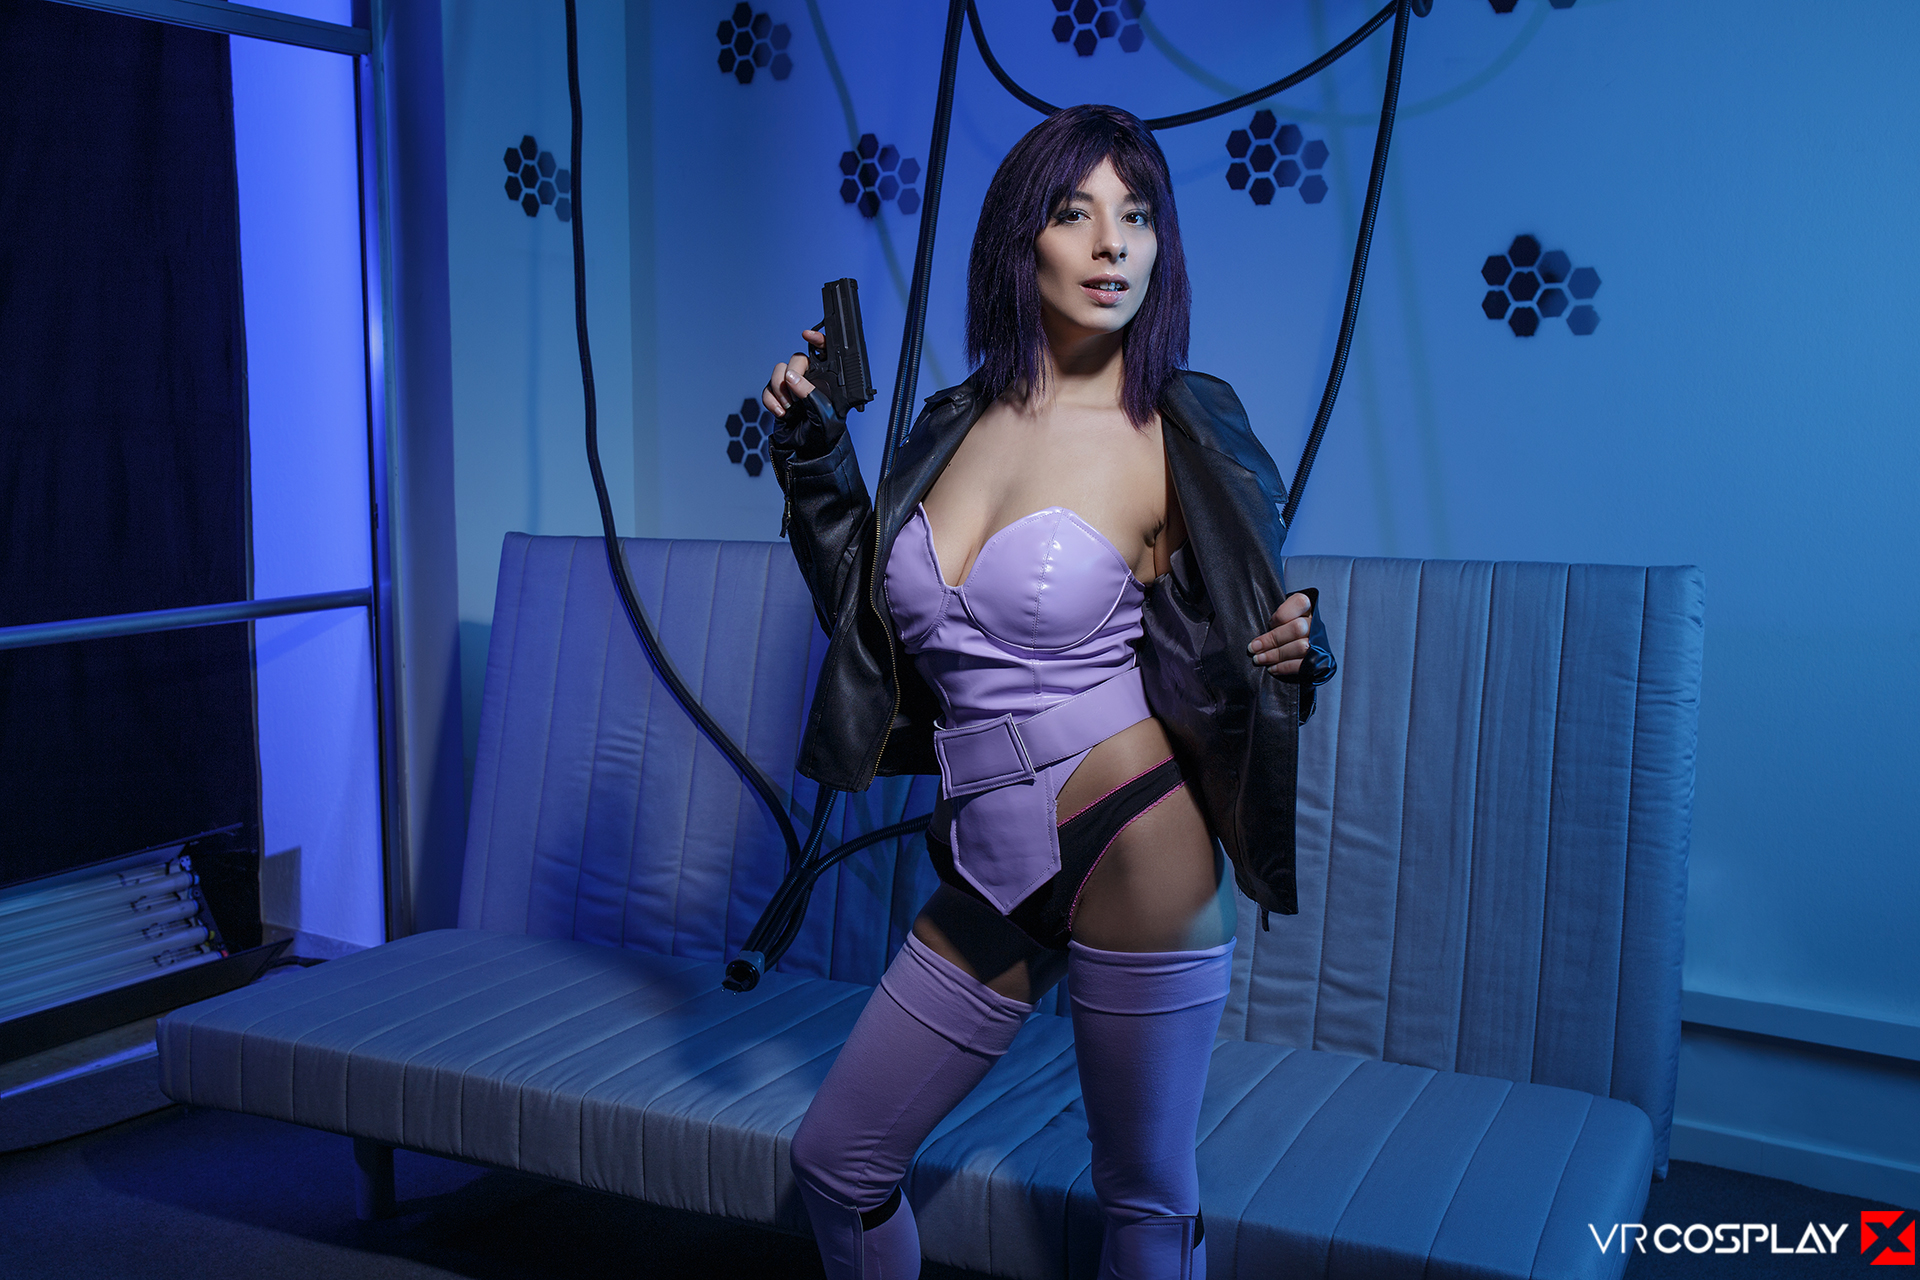 Ghost in the Shell VR Cosplay Zenda Sexy as Major